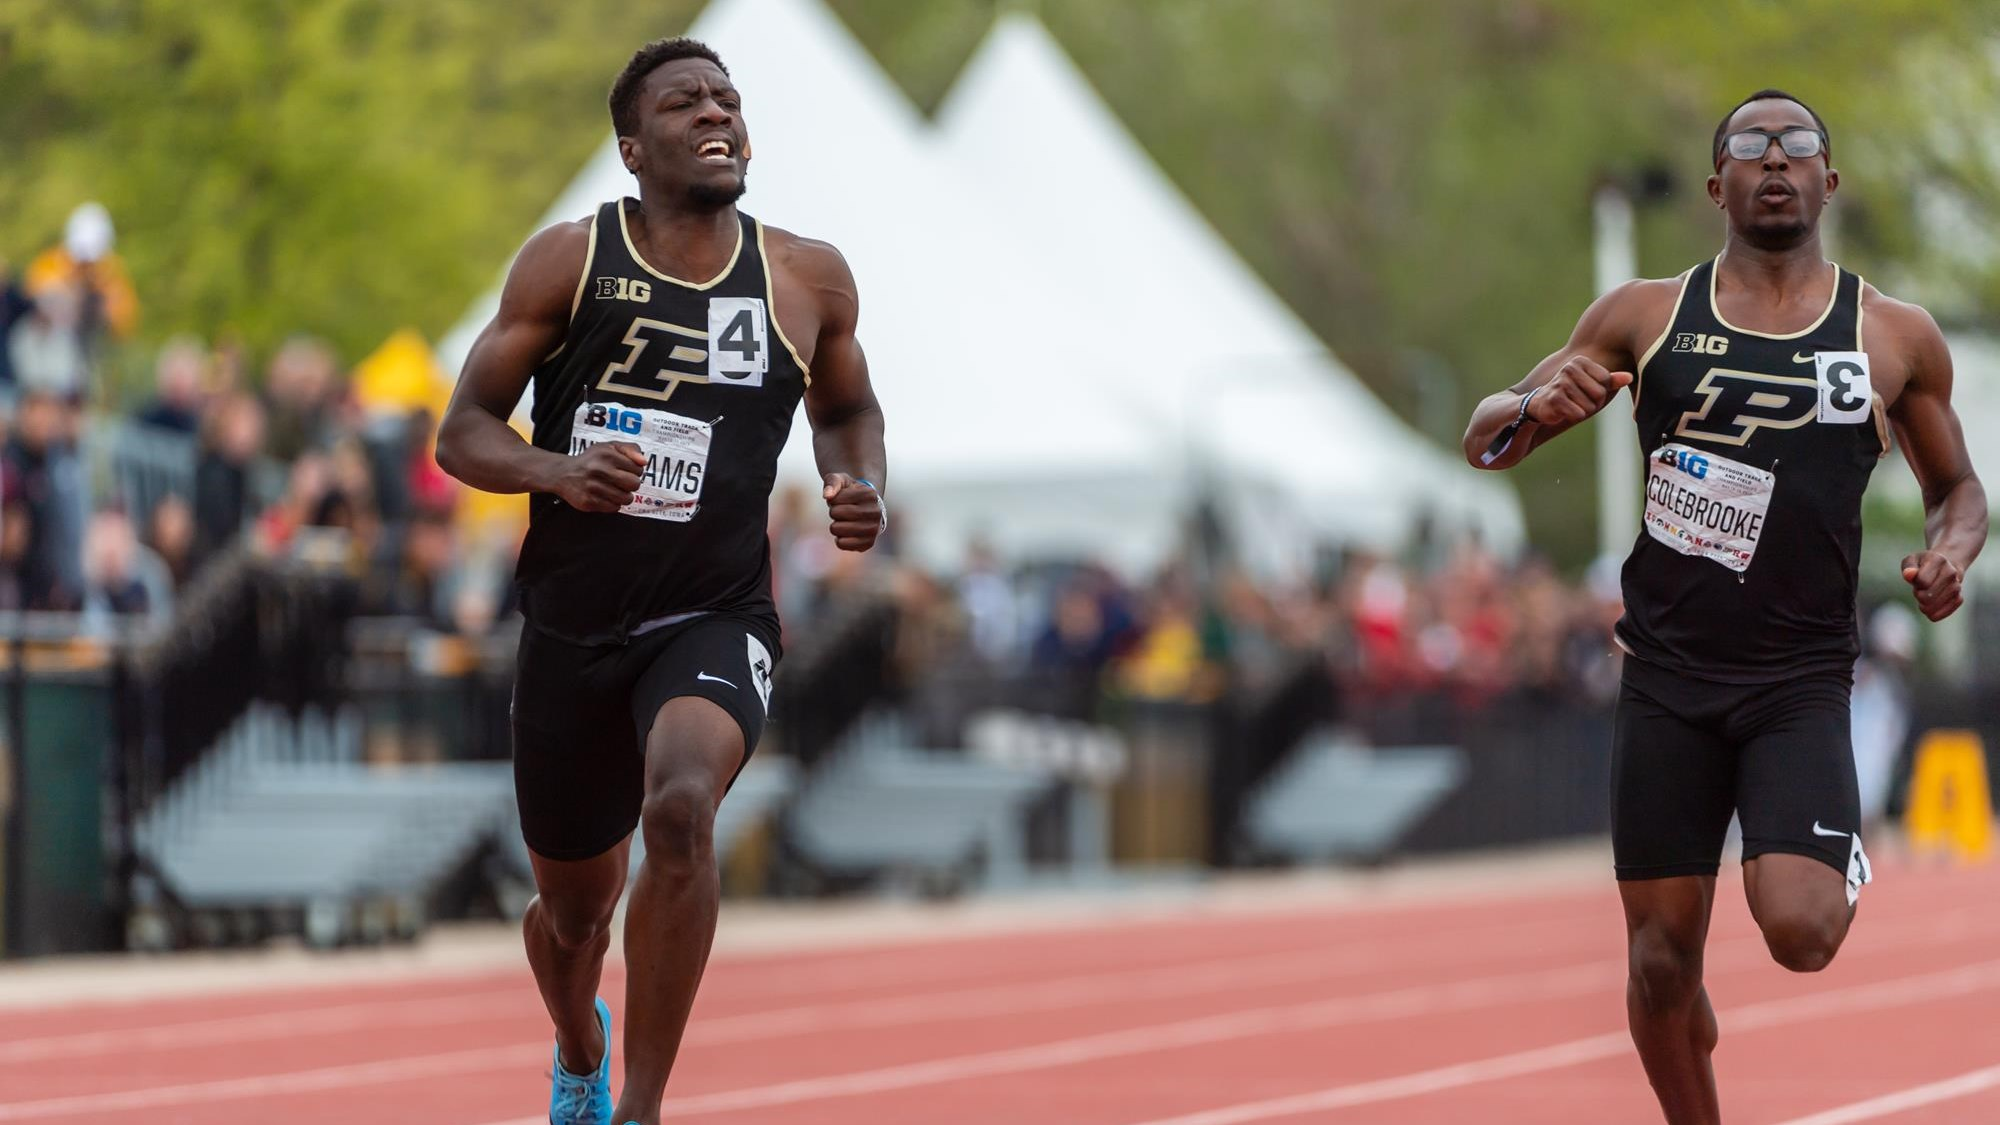 Two members of the track and field team for Purdue